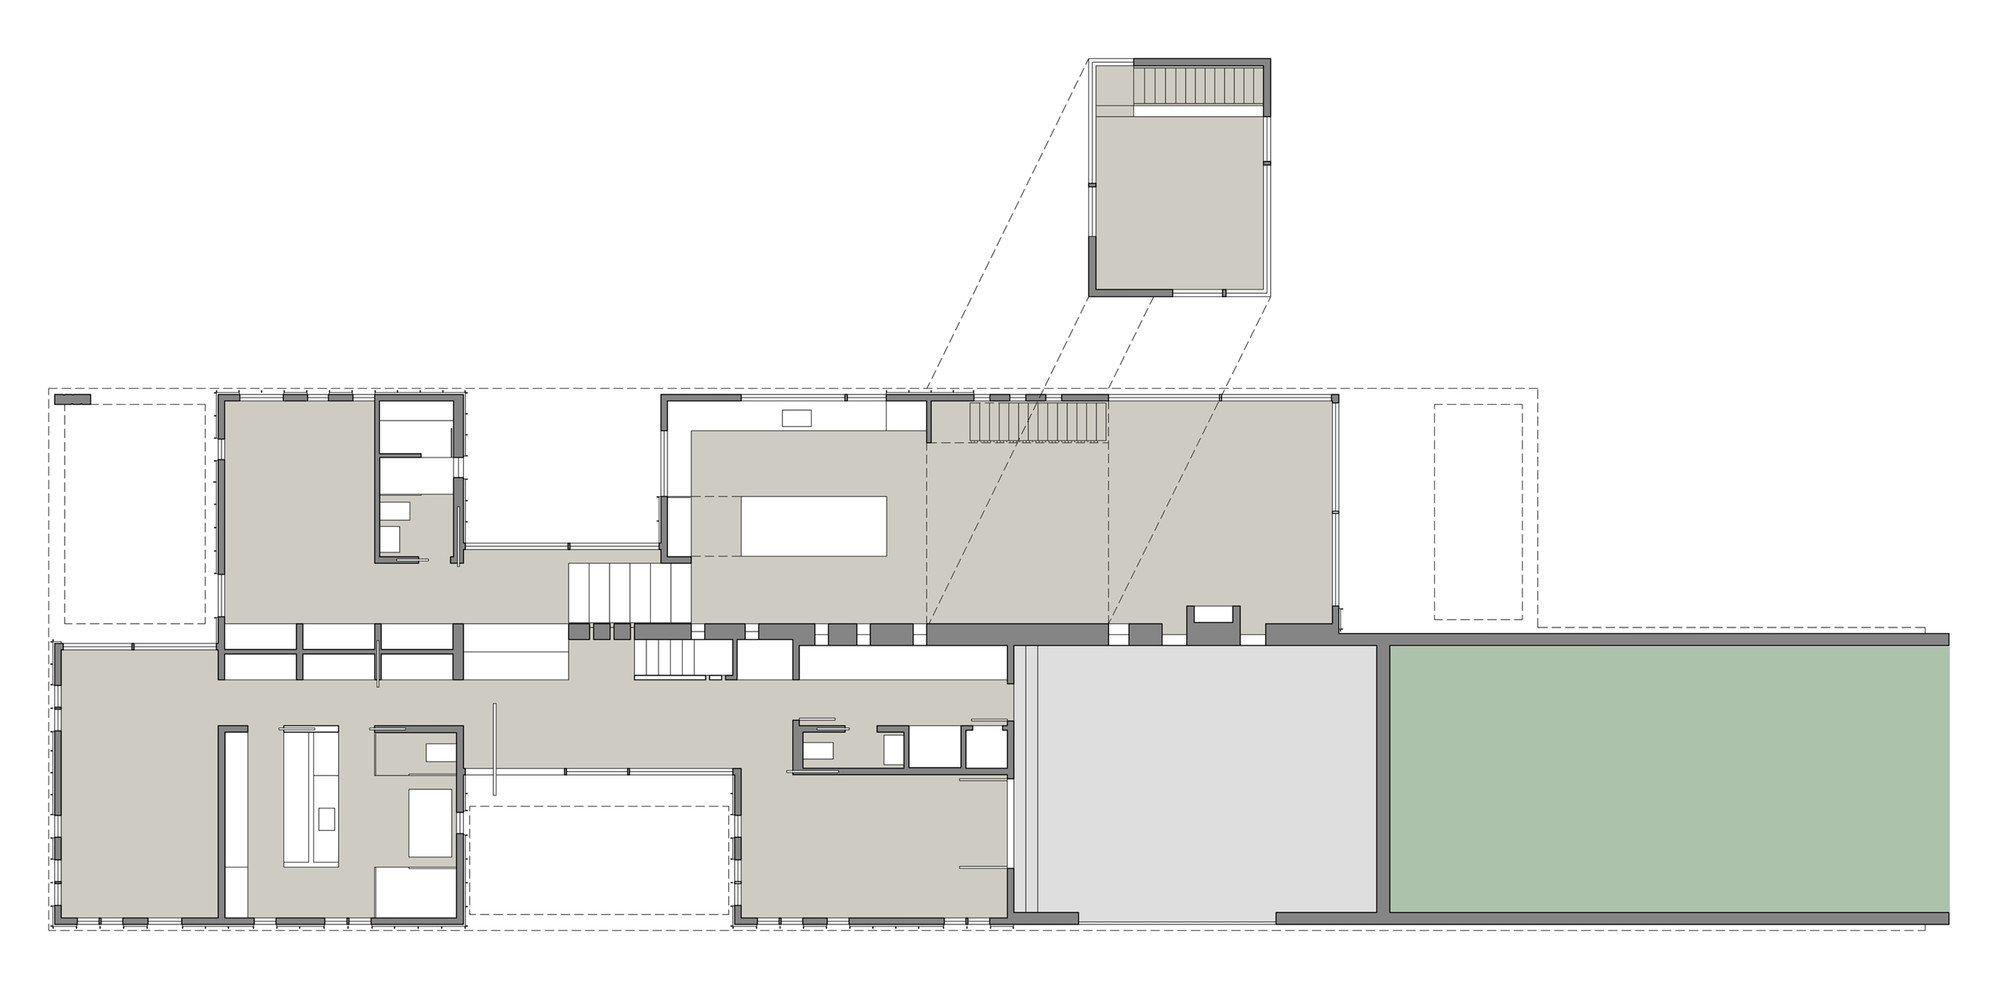 Vacation Cabin Plans Gallery Of Topo House Johnsen Schmaling Architects 13